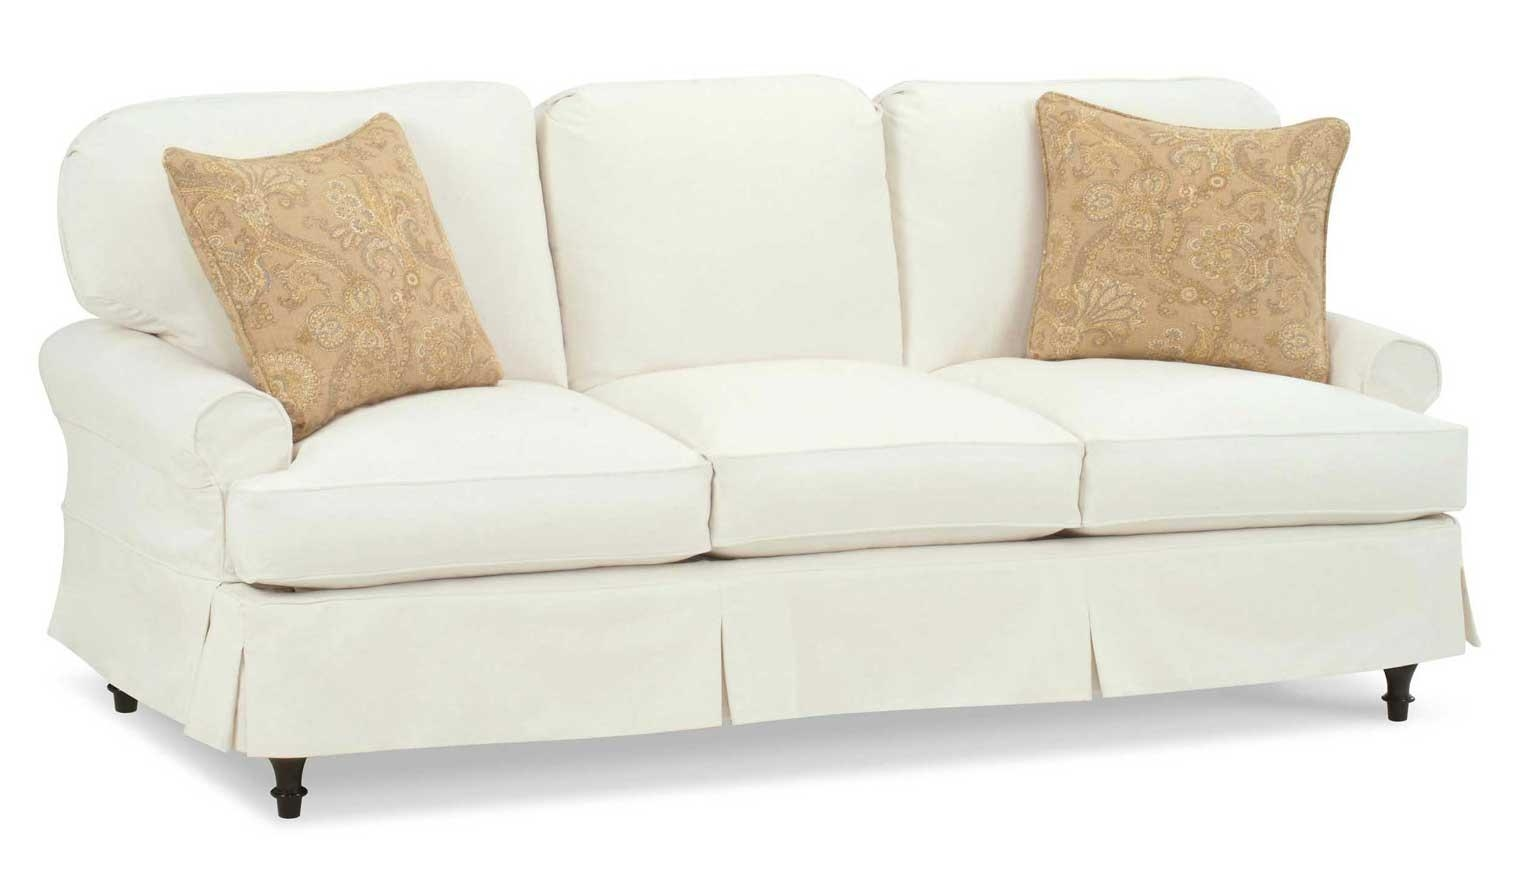 Farmhouse And Country Furniture | Cottage Home® Intended For Country Cottage Sofas And Chairs (View 2 of 20)